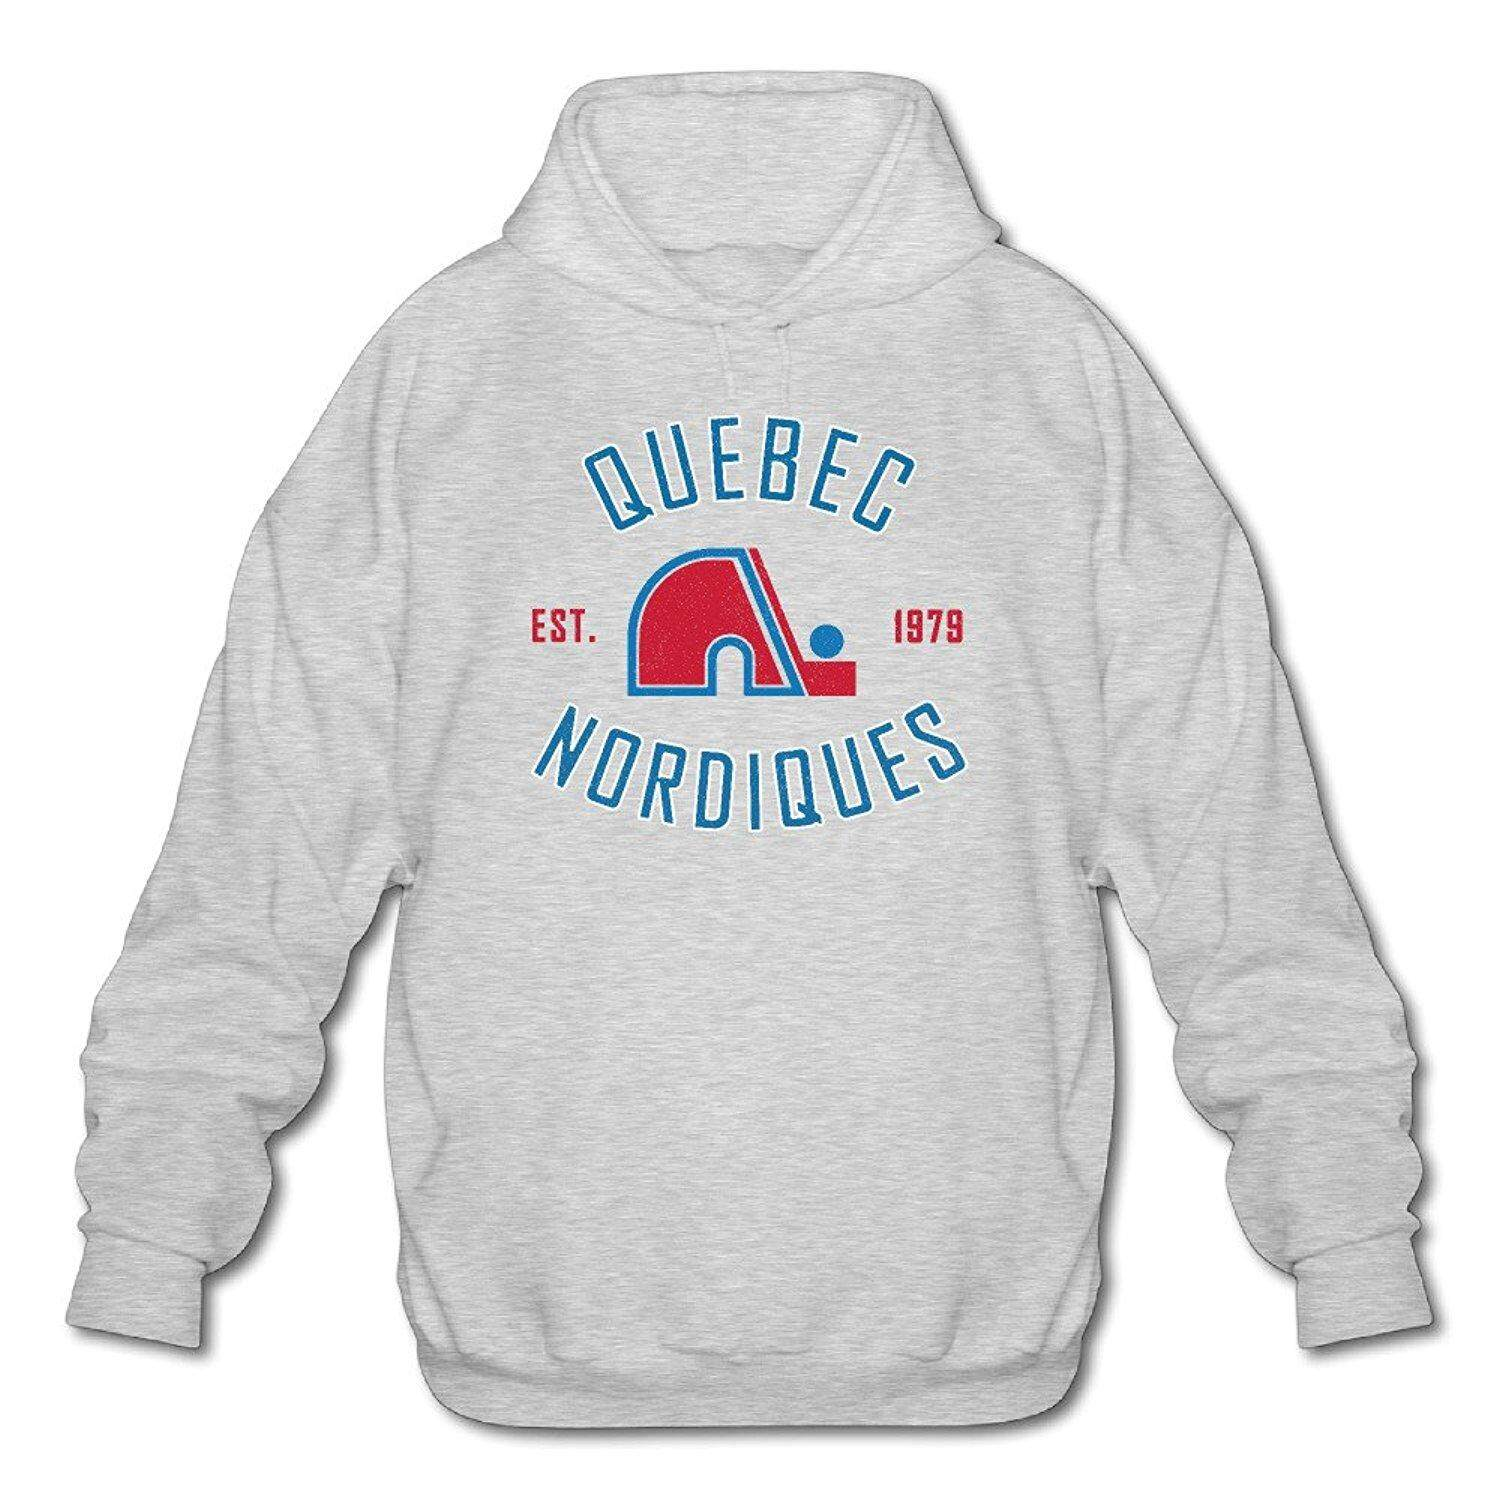 Mens Quebec Nordiques Heritage 1979 Fashion Pullover Hoodie - intl